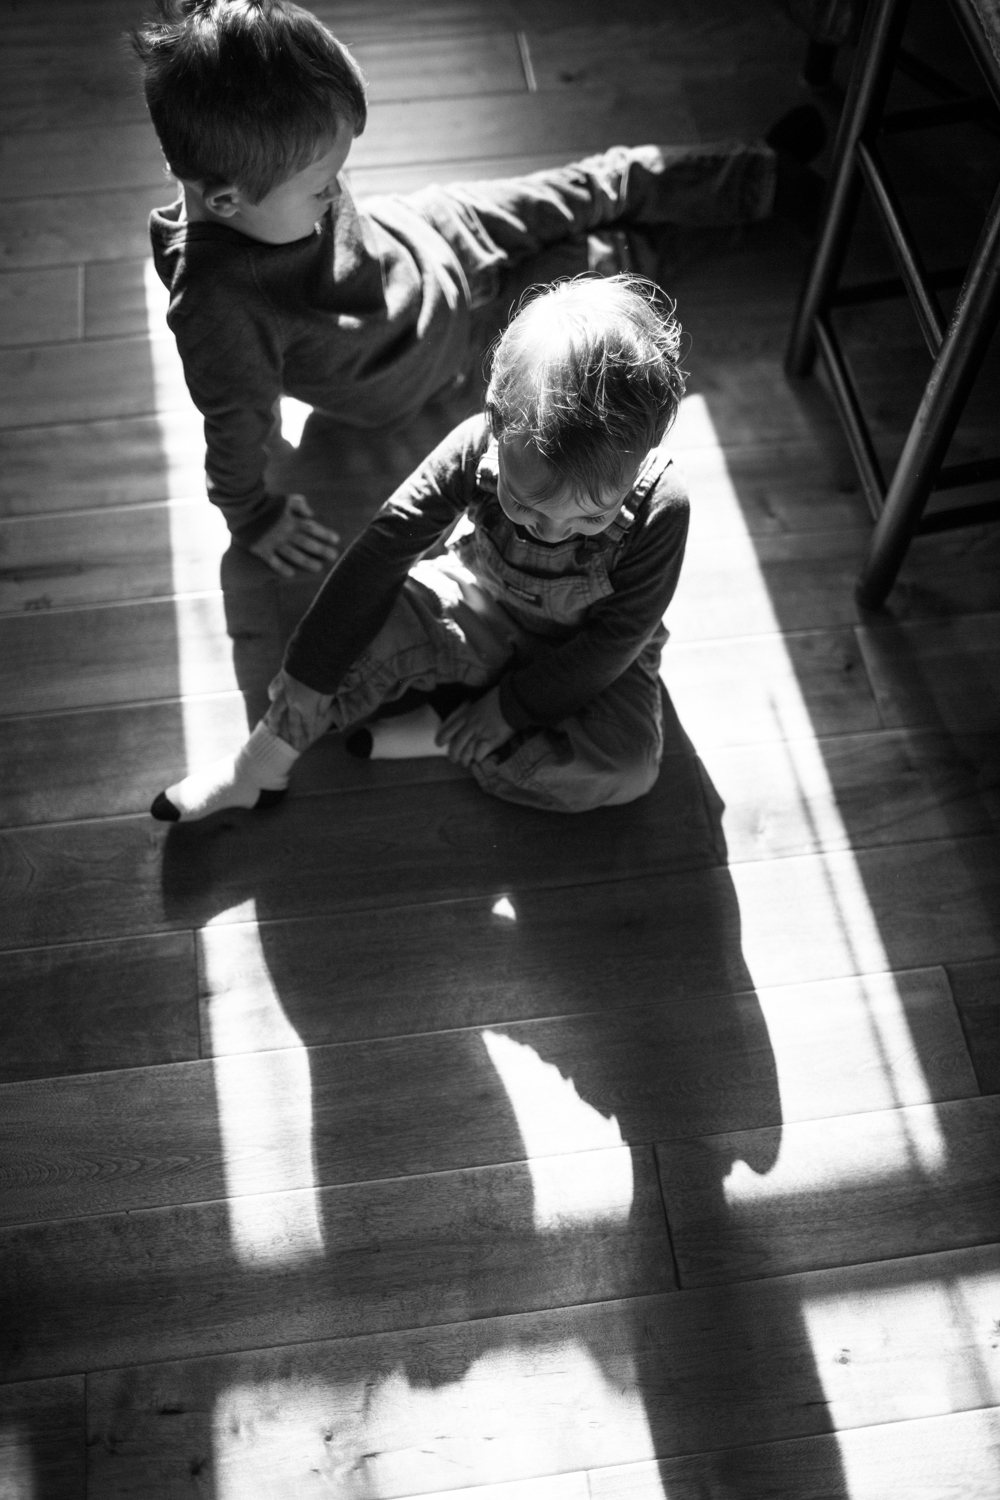 candid childhood natural light family lifestyles photographer grass valley nevada city